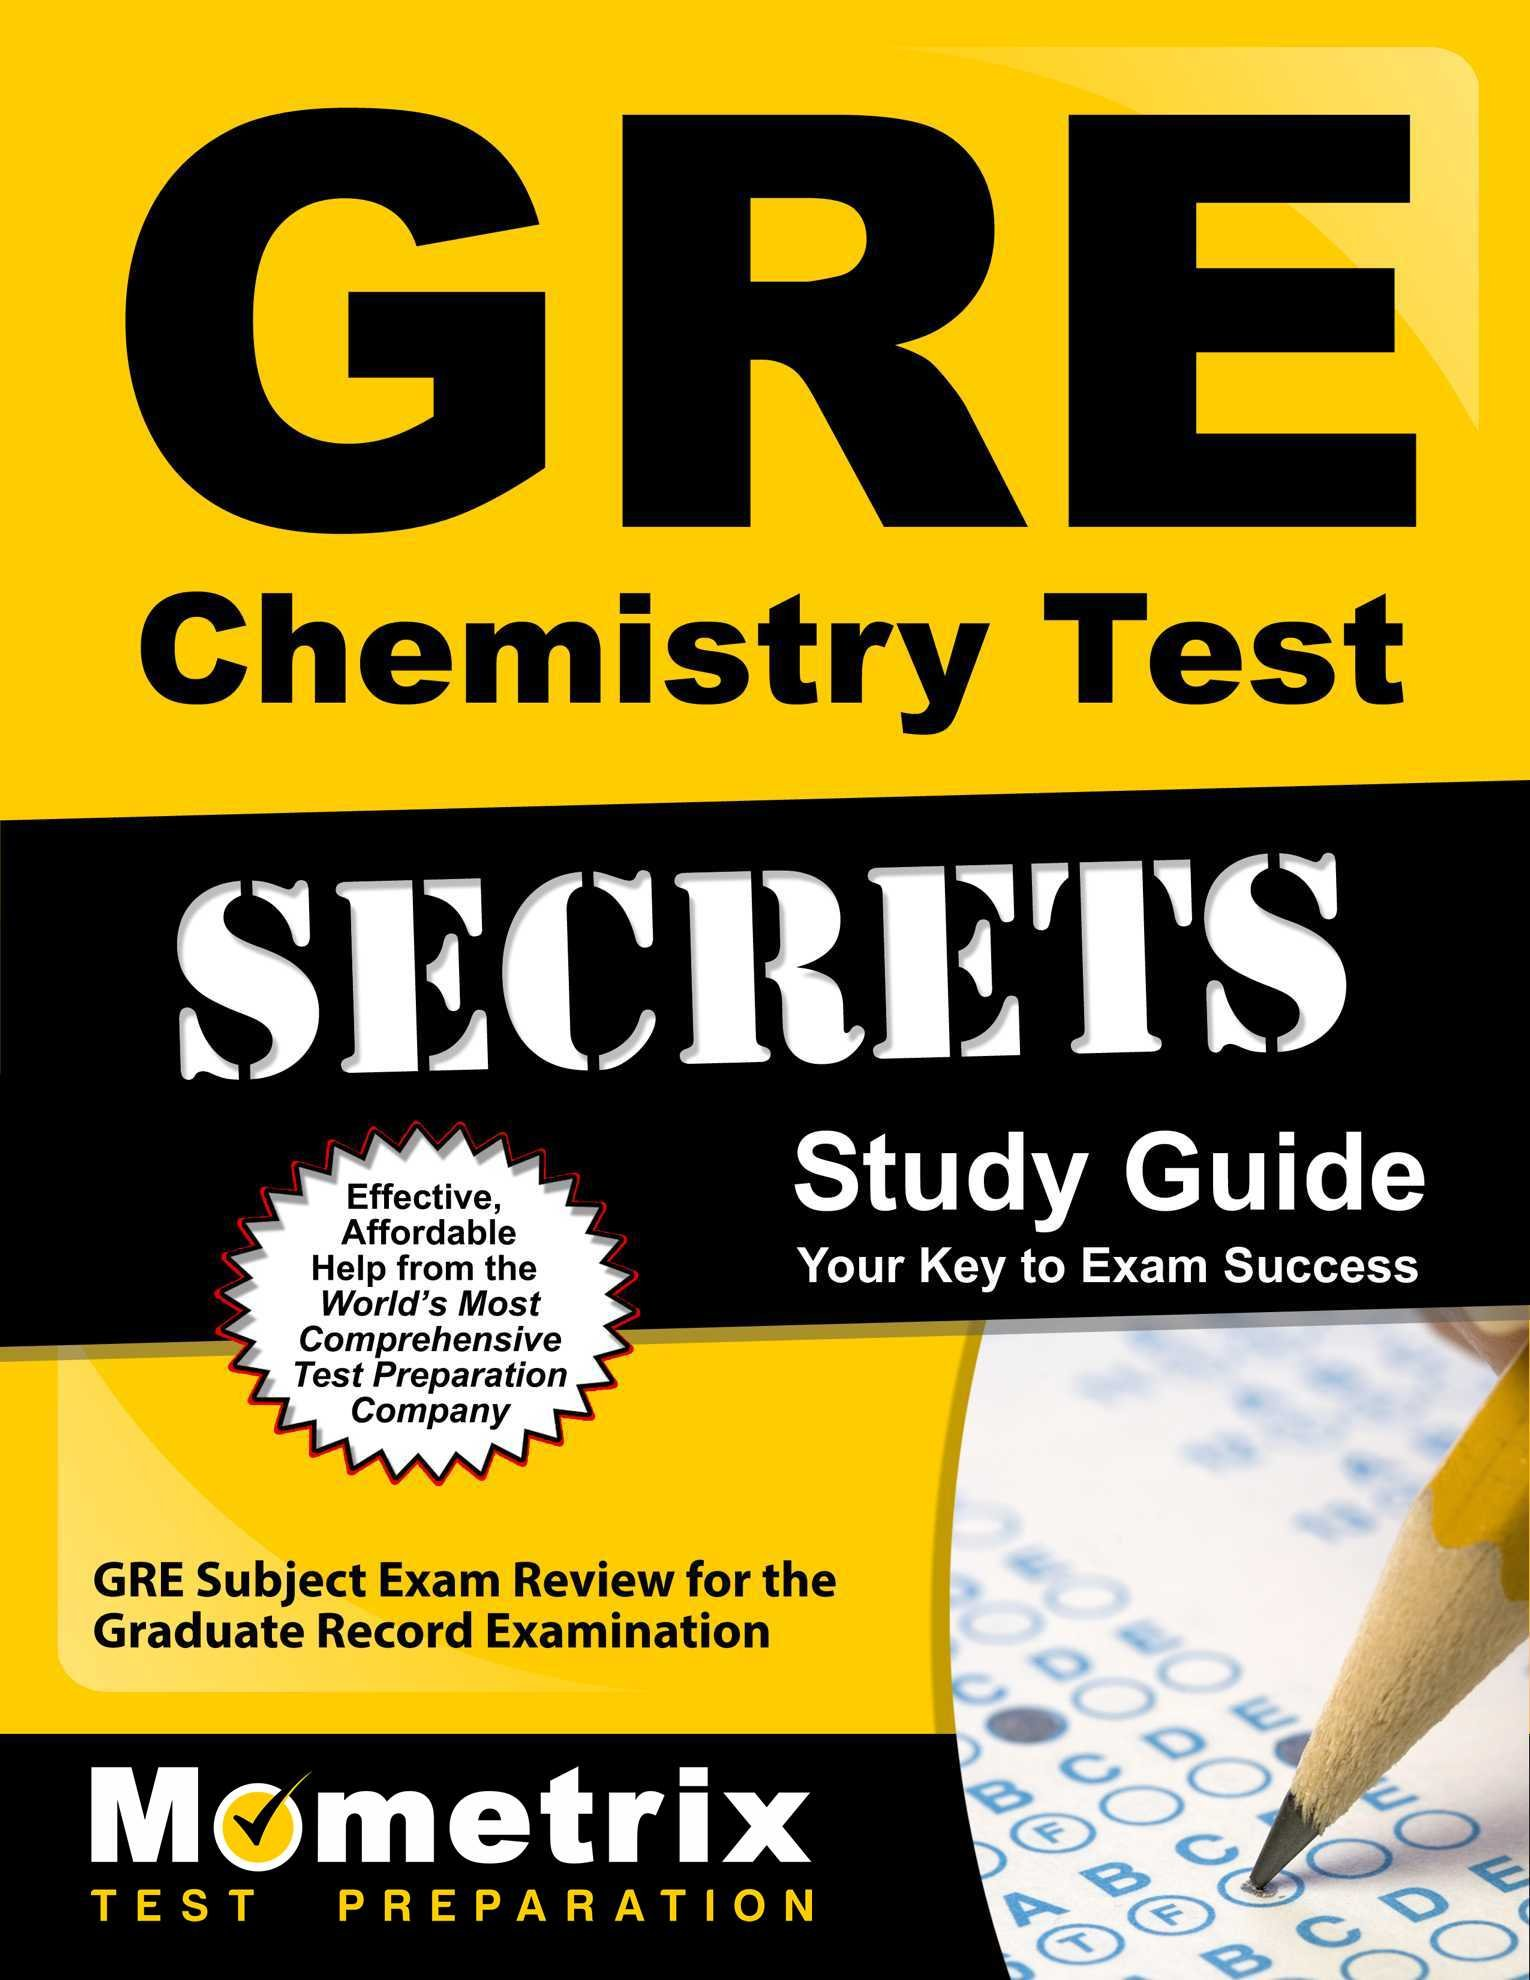 GRE Chemistry Test Secrets Study Guide: GRE Subject Exam Review for the Graduate Record Examination by Mometrix Media LLC